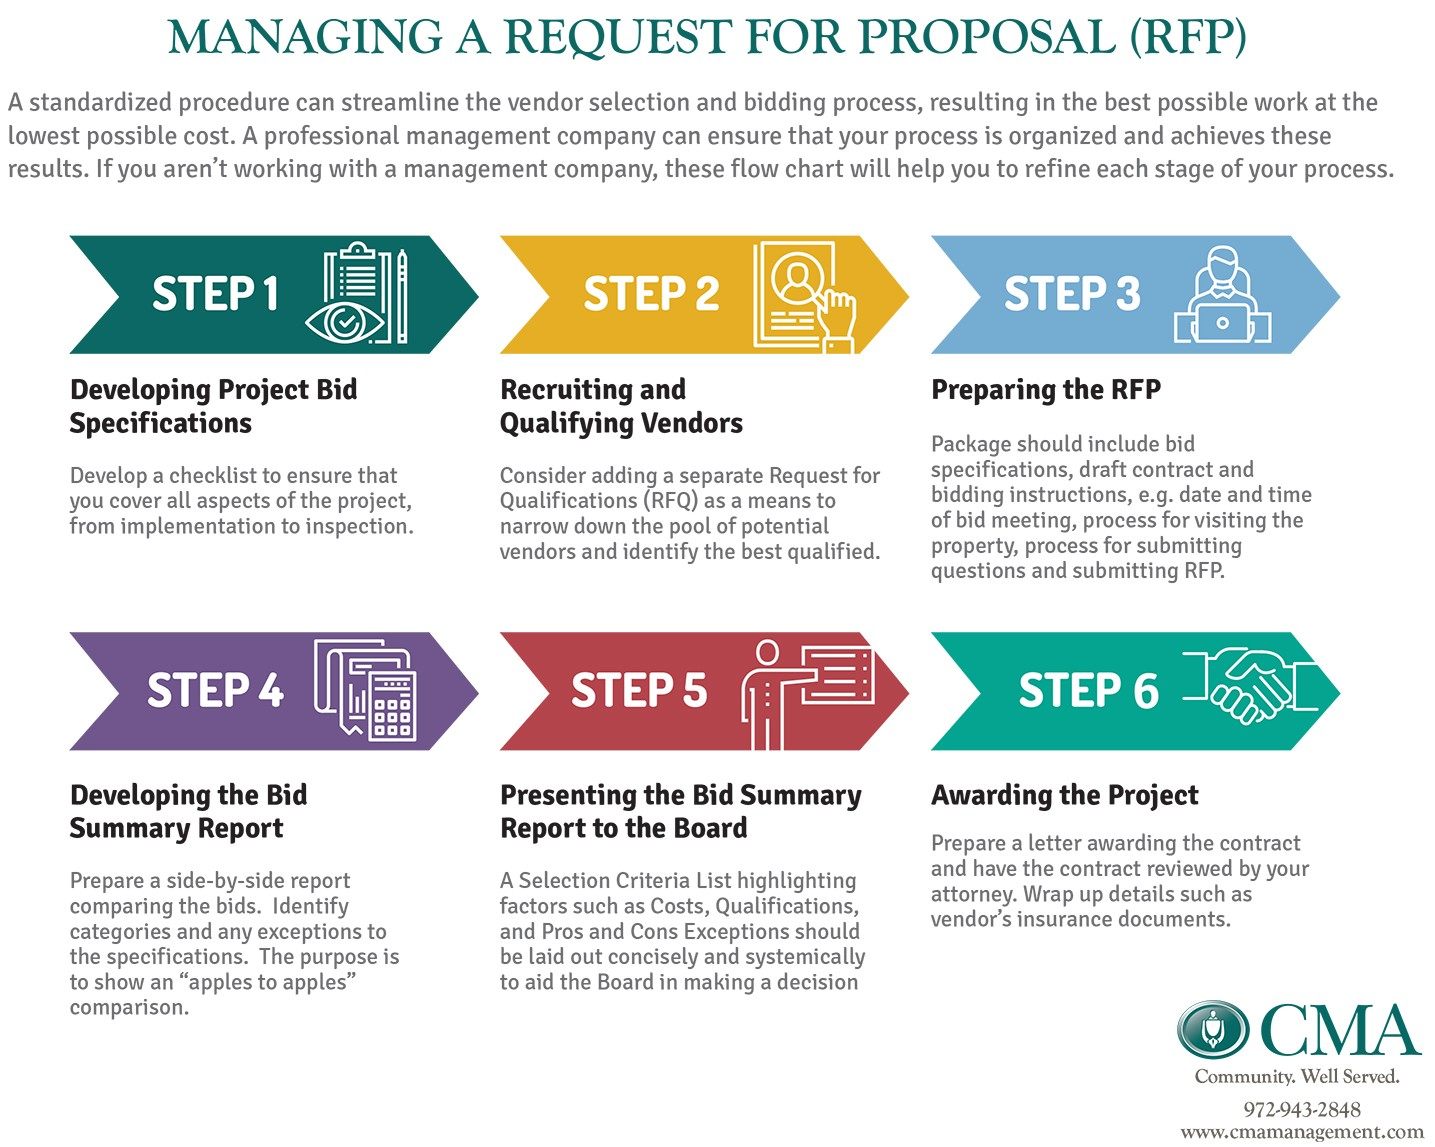 rfp process diagram wiring of automotive ignition system successful projects start with a rigorous bid and contract